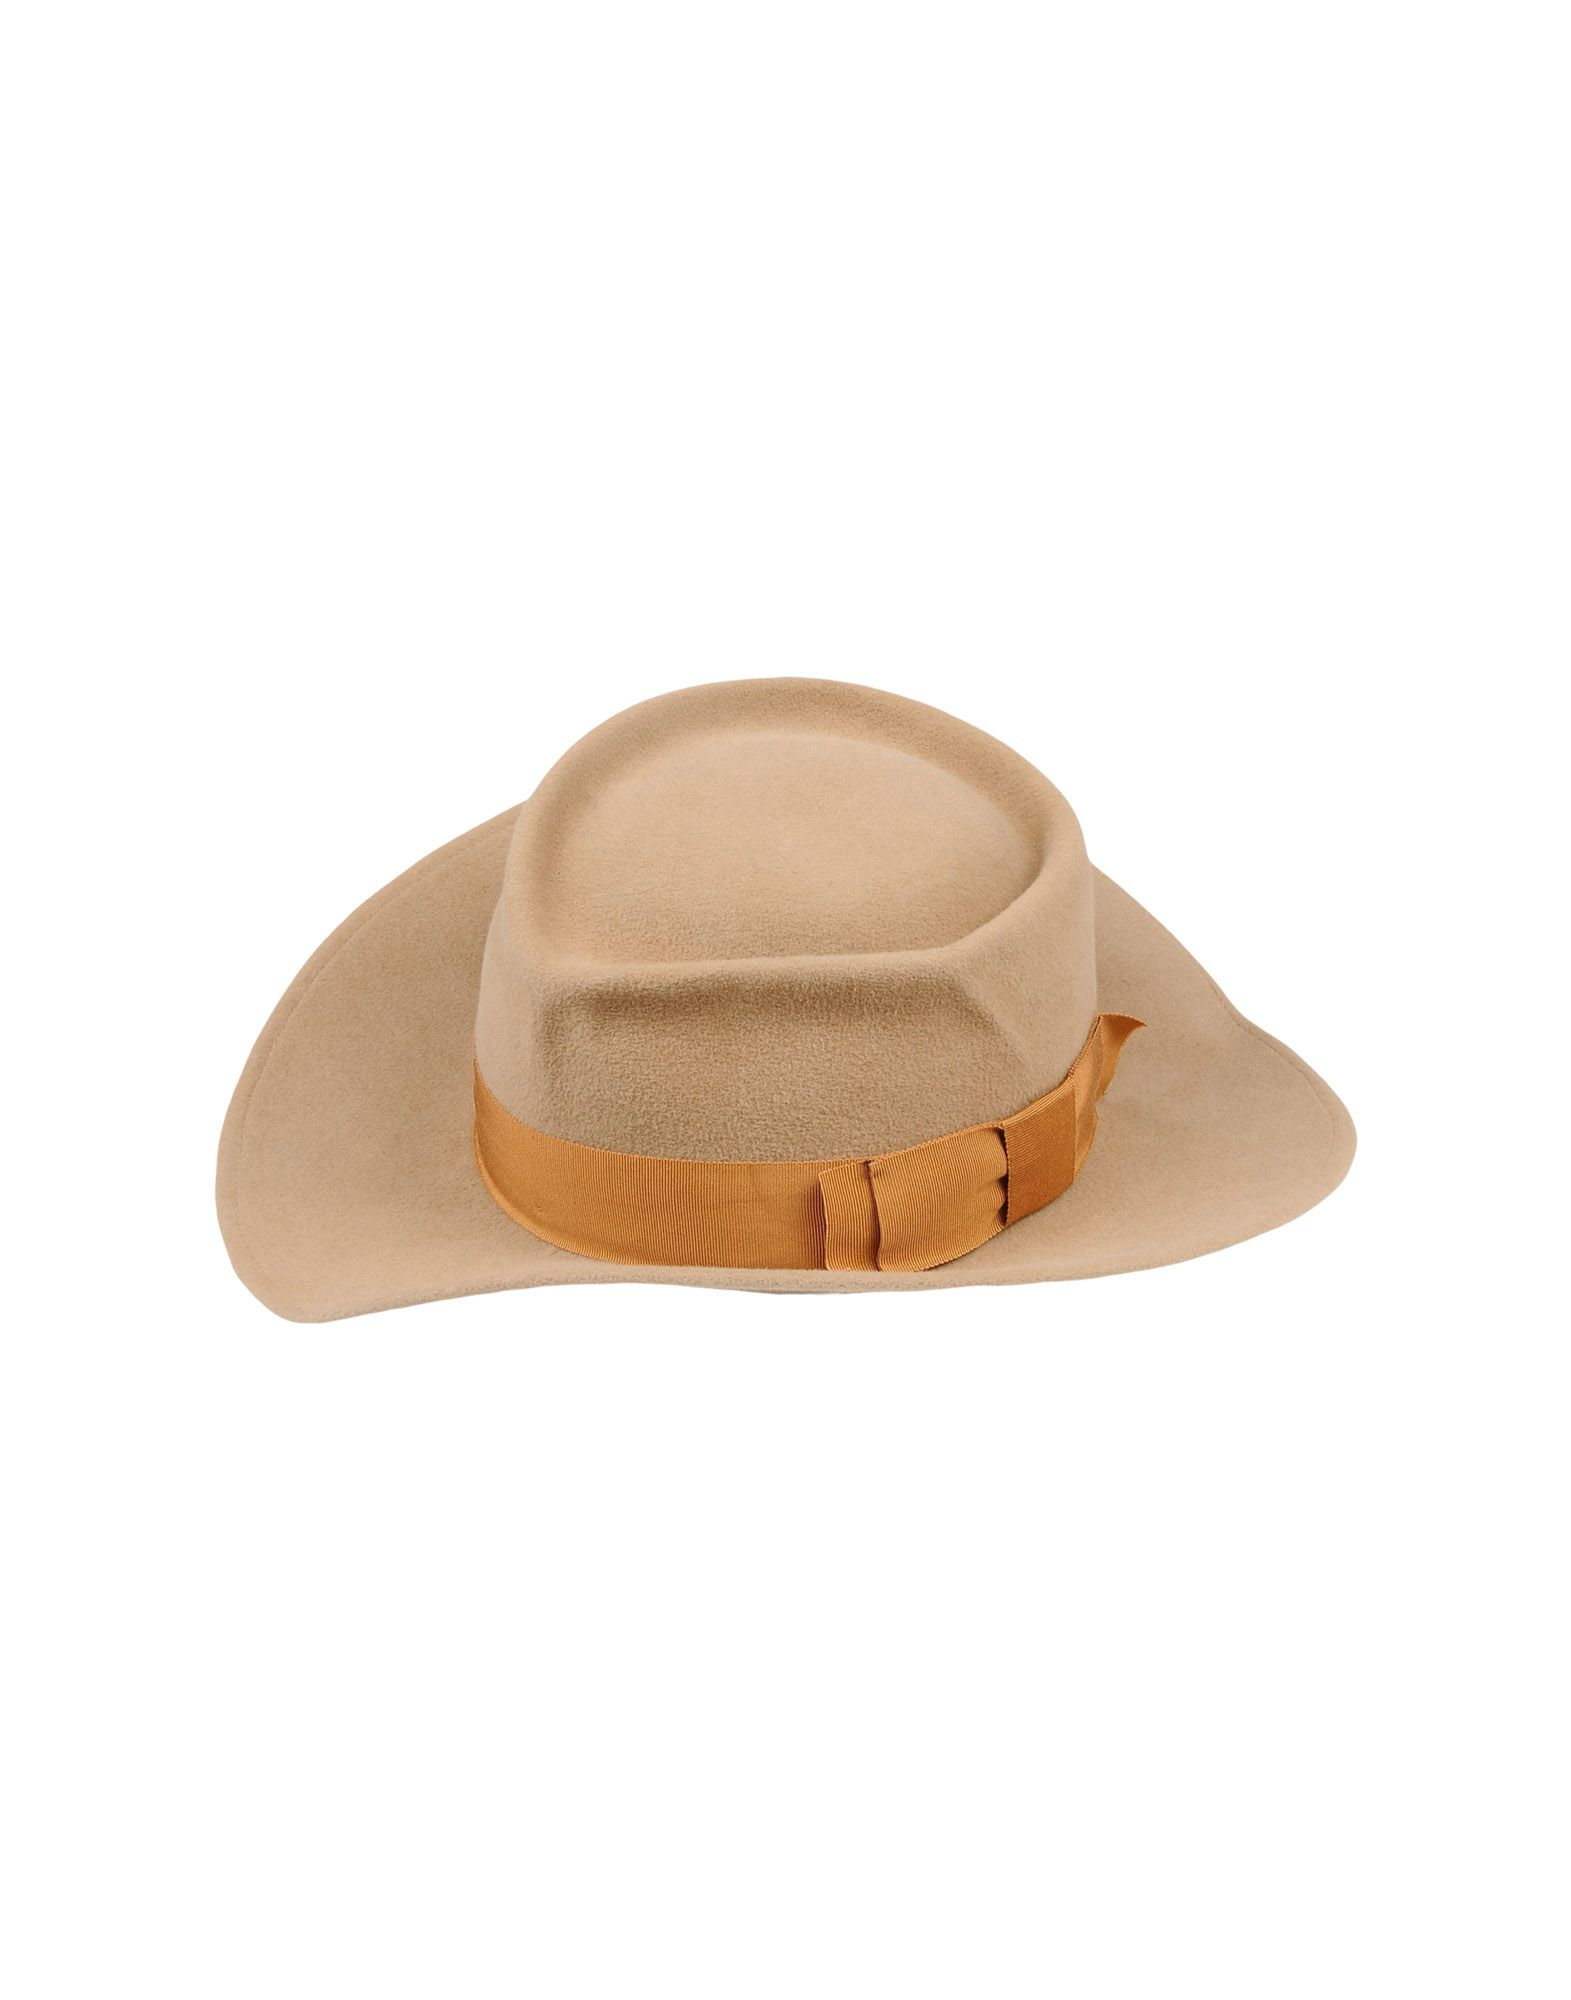 GLADYS TAMEZ Hat in Sand